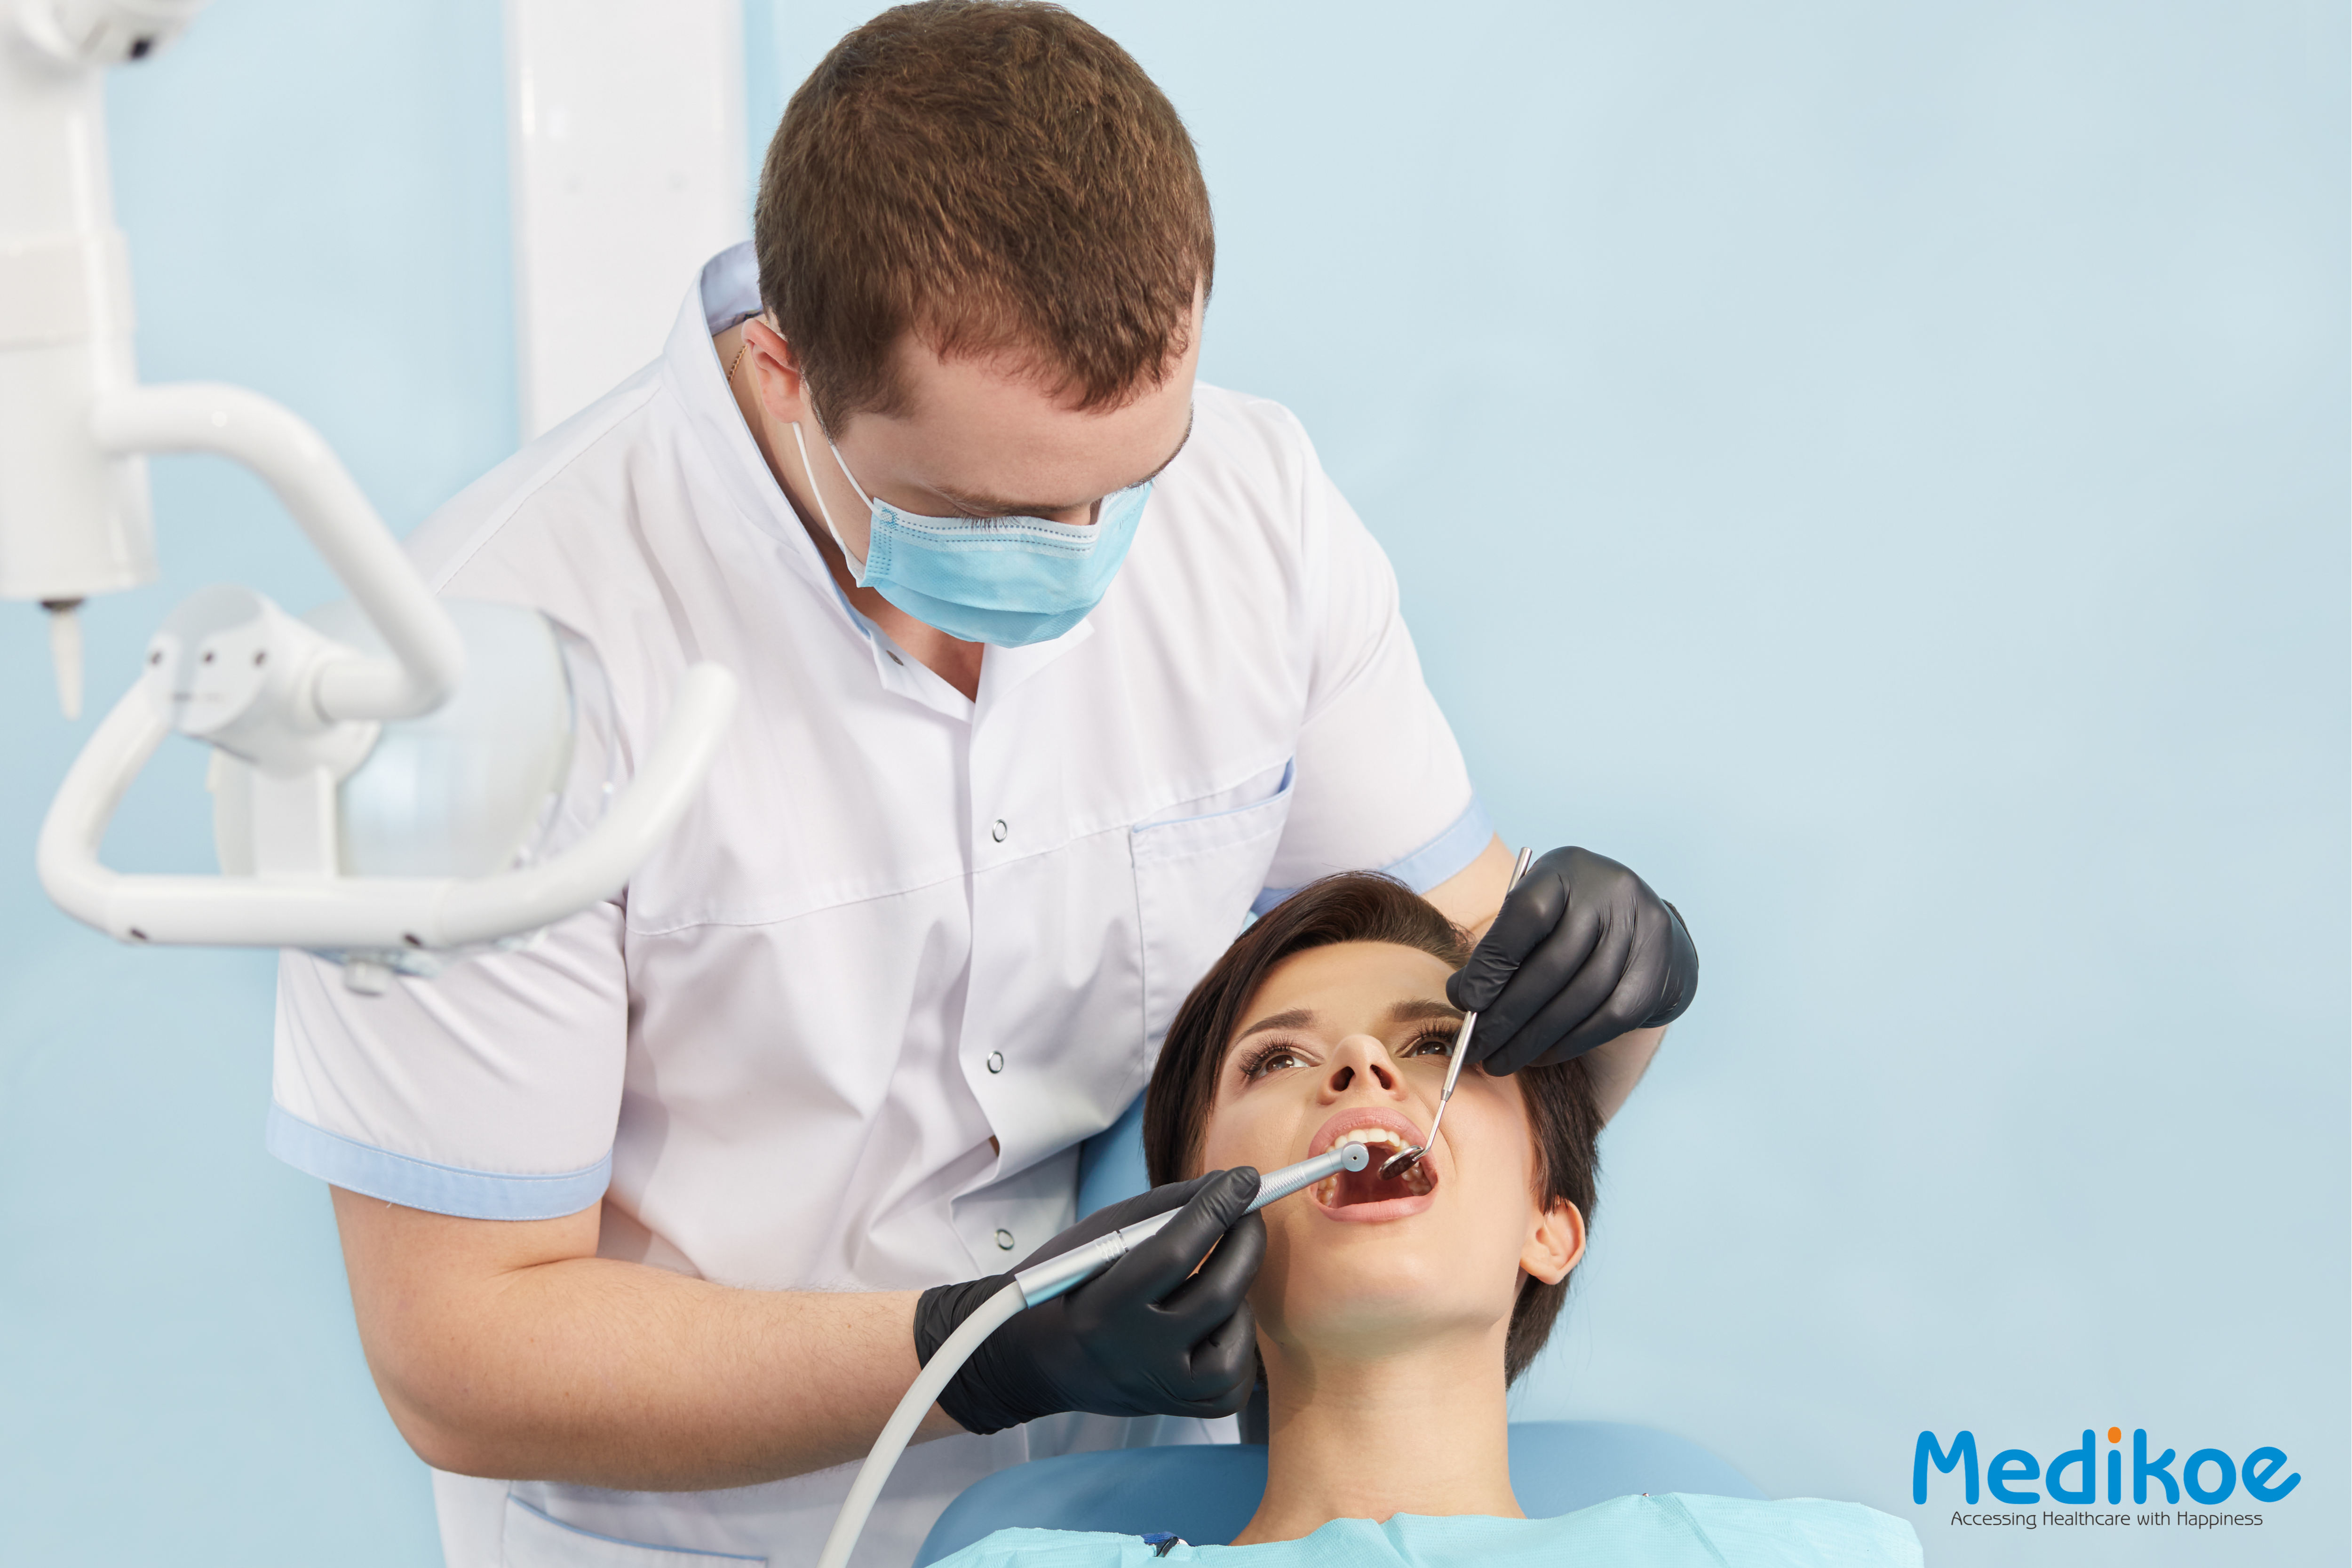 What Is The Result Of Neglected Oral Hygiene?